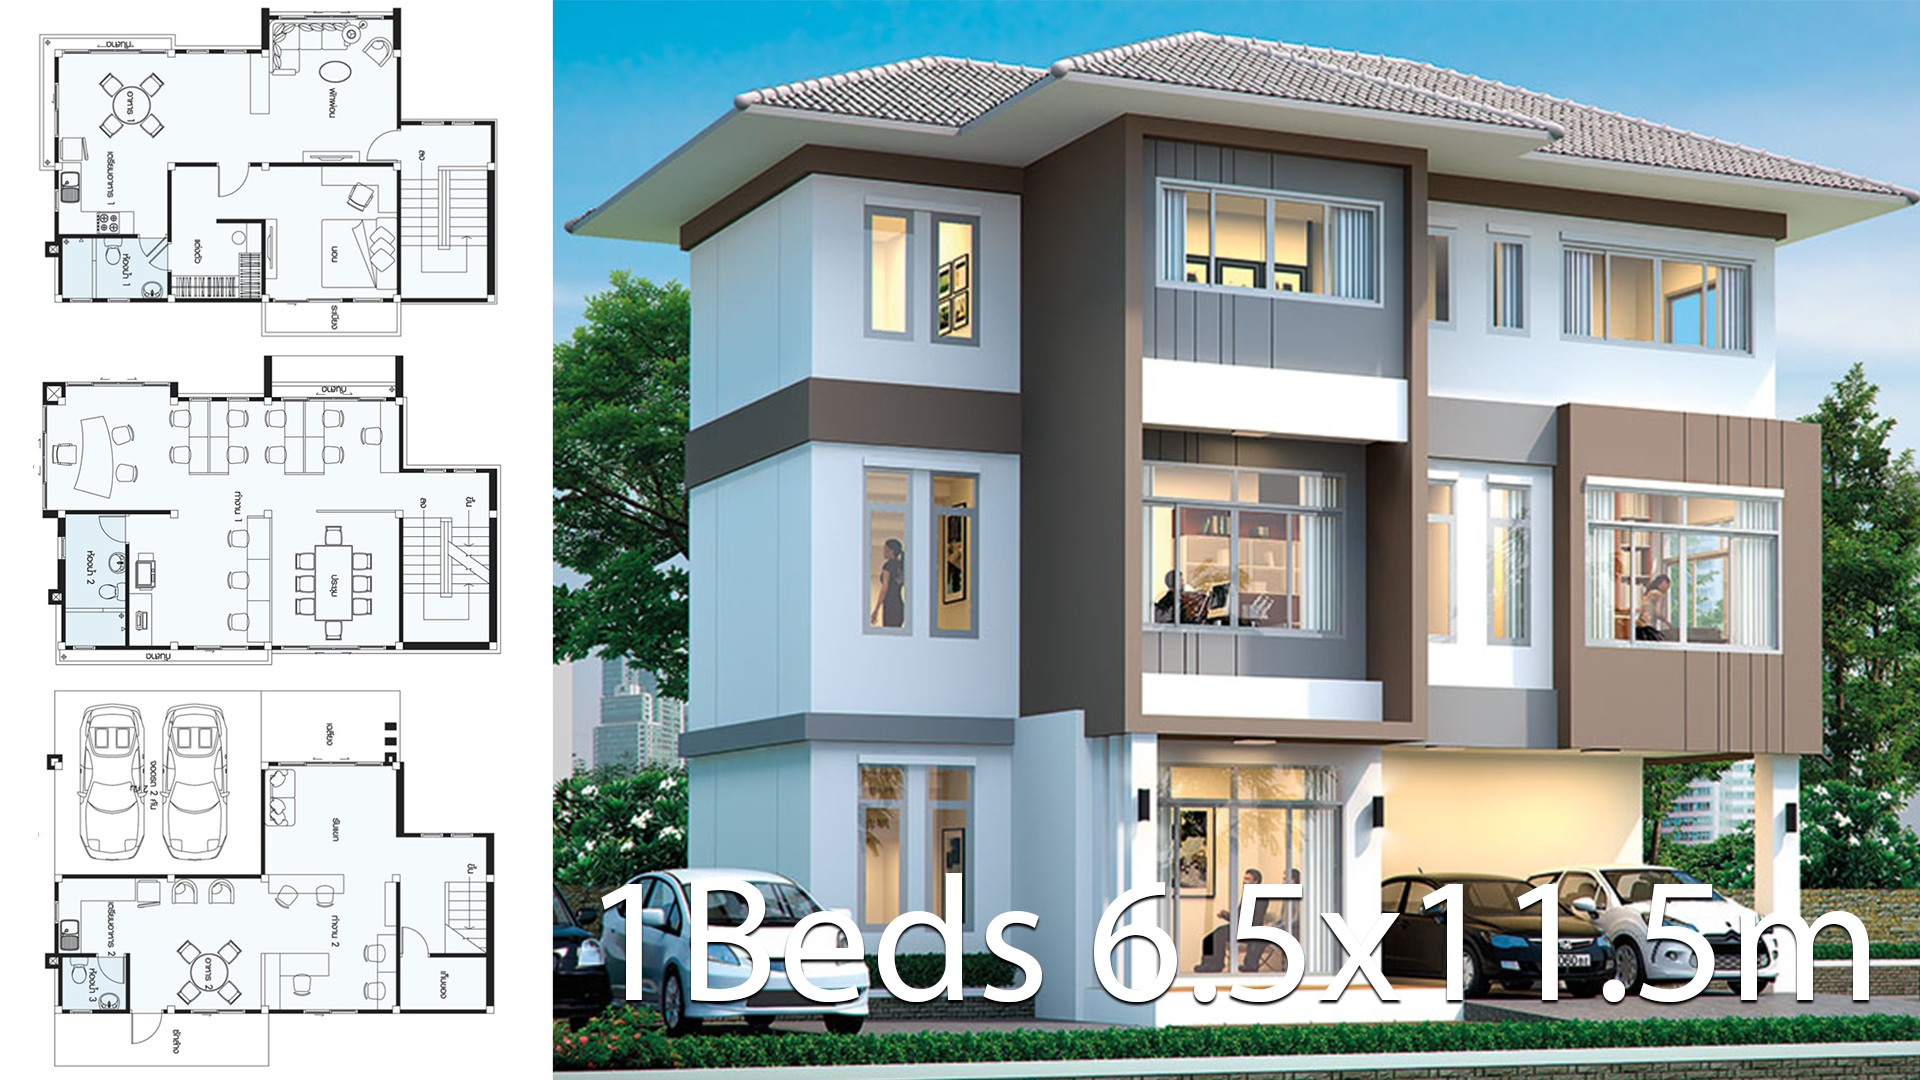 Office House design plan idea 6.6×11.5m